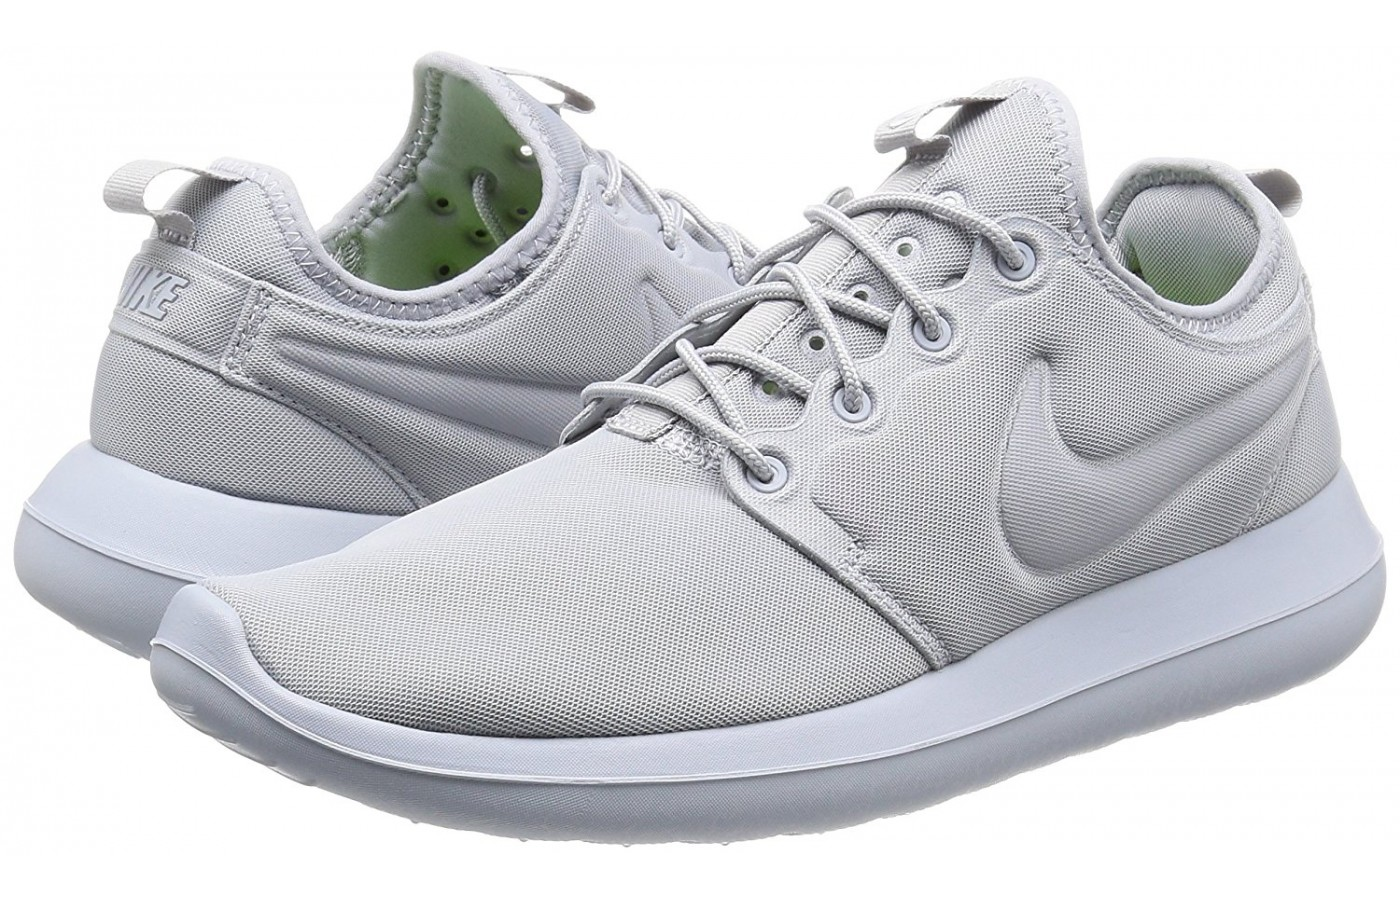 eaa0810e6ad Nike Roshe 2 Reviewed   Tested for Performance in 2019